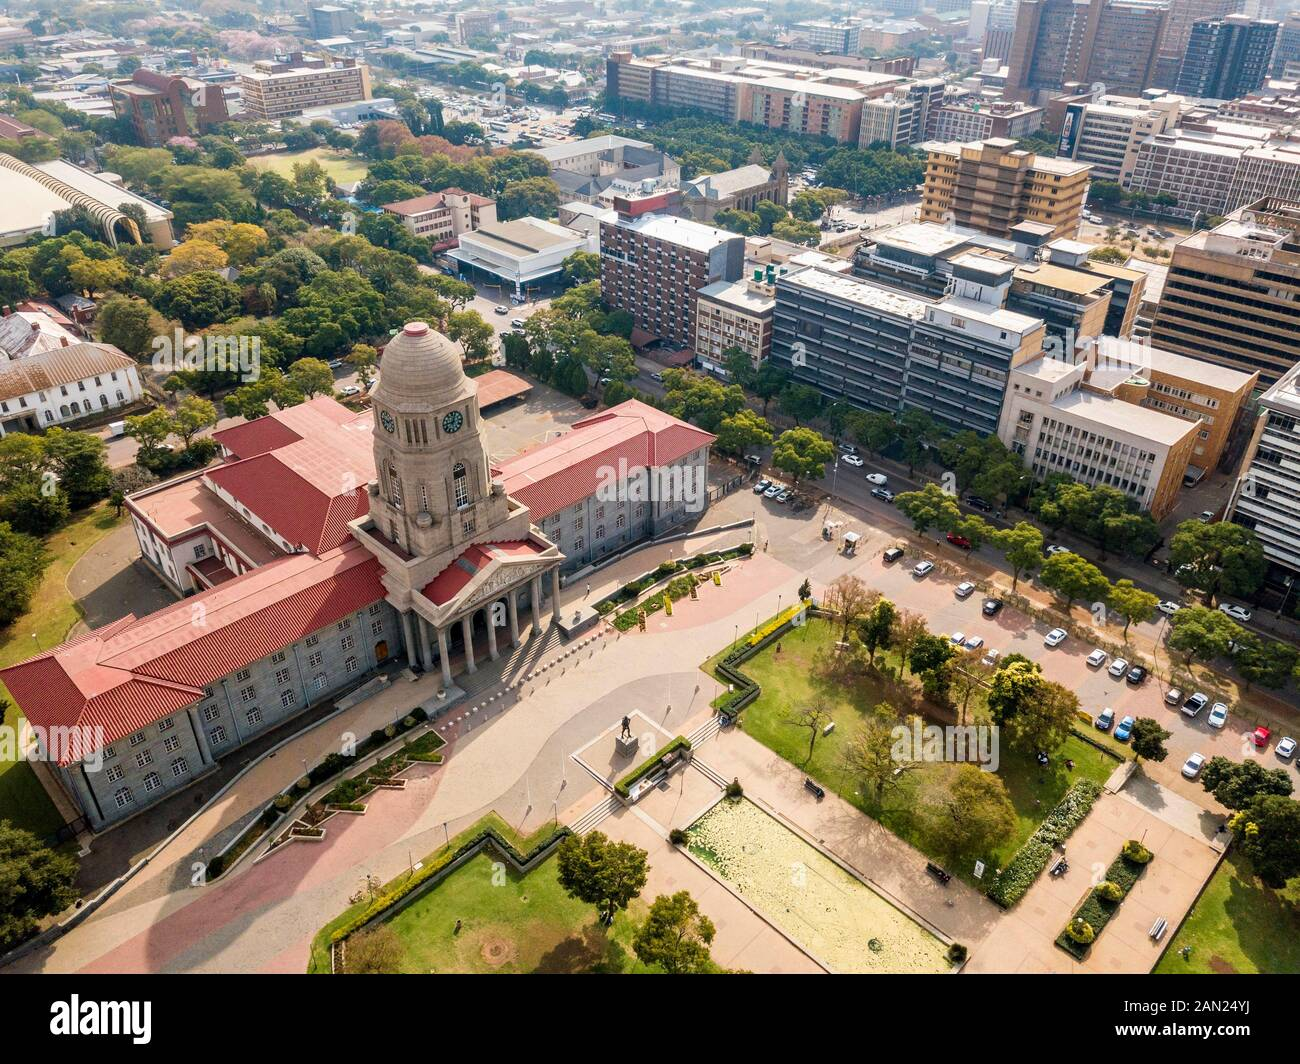 Aerial view of Tshwane city hall, Pretoria, South Africa Stock Photo